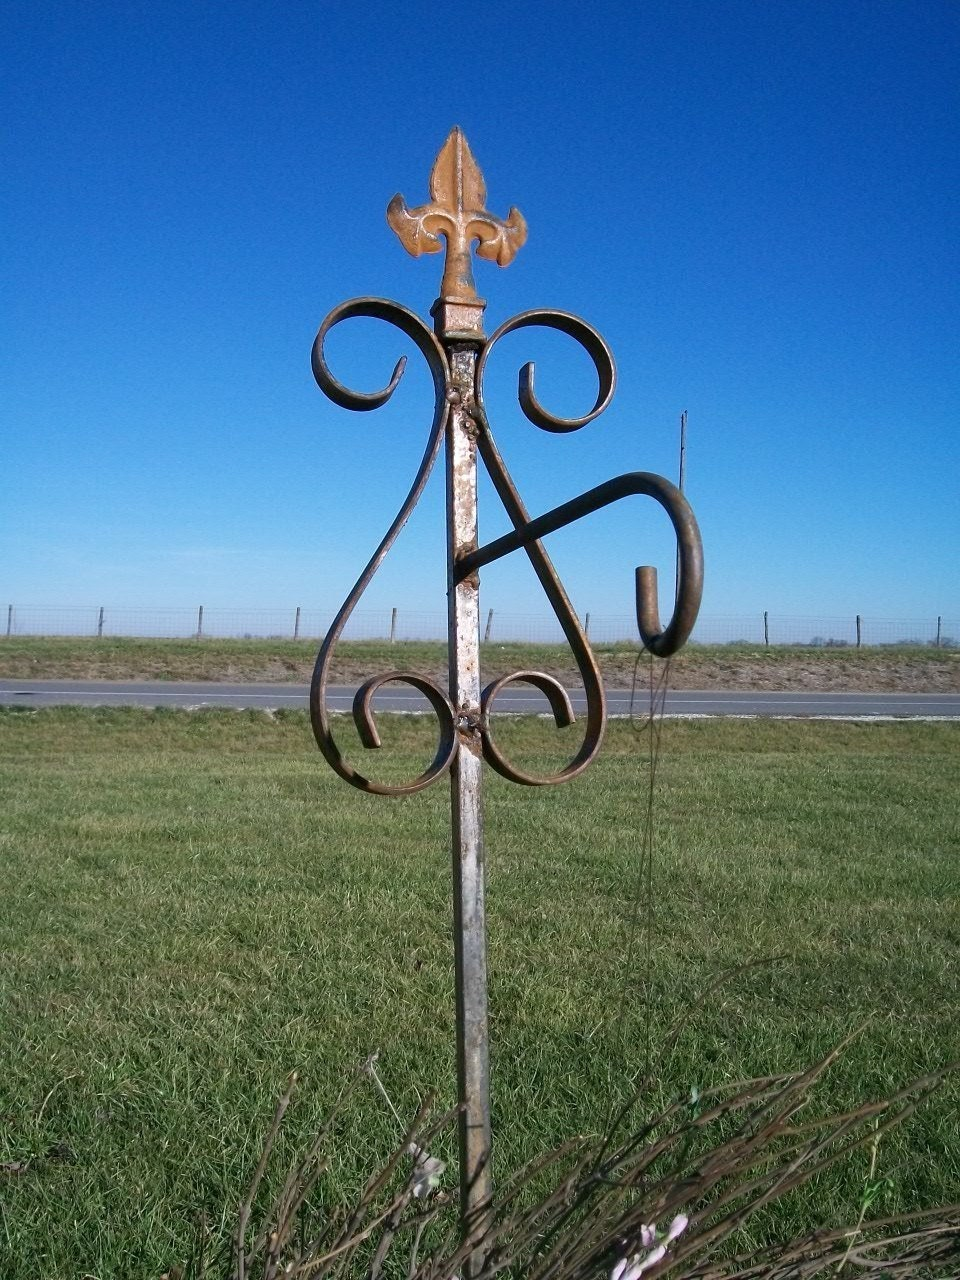 52 Wrought Iron Garden Stake For A Hanging Pot Holder